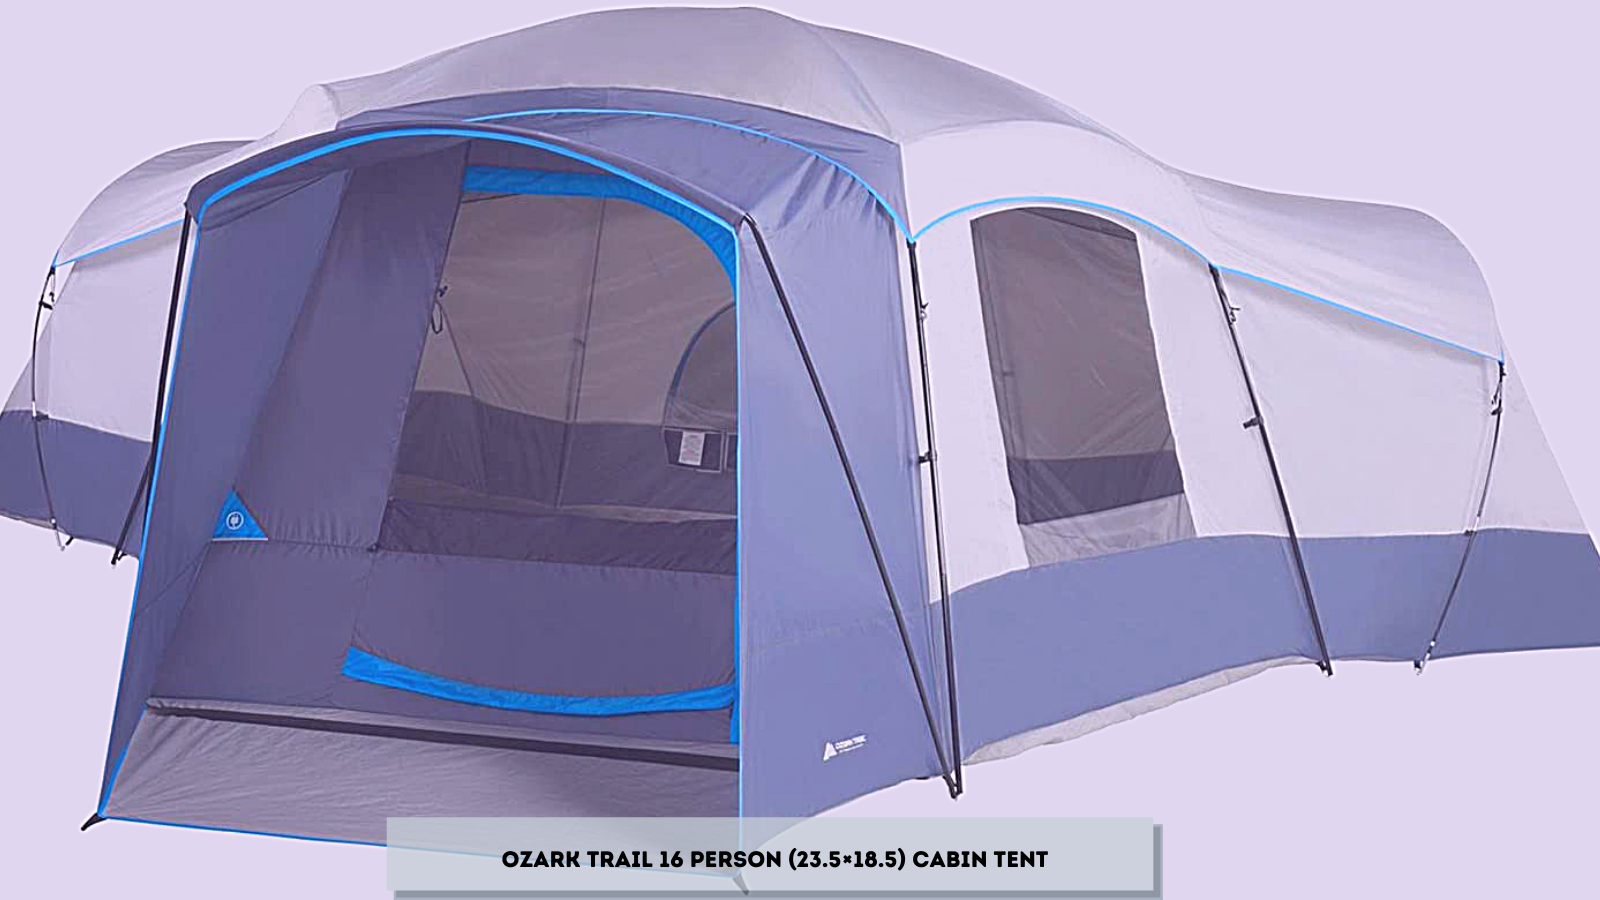 Spacious Family Sized 16-Person Weather Resistant Ozark Trail 23.5' x 18.5' Cabin Camping Tent, Gray and Blue